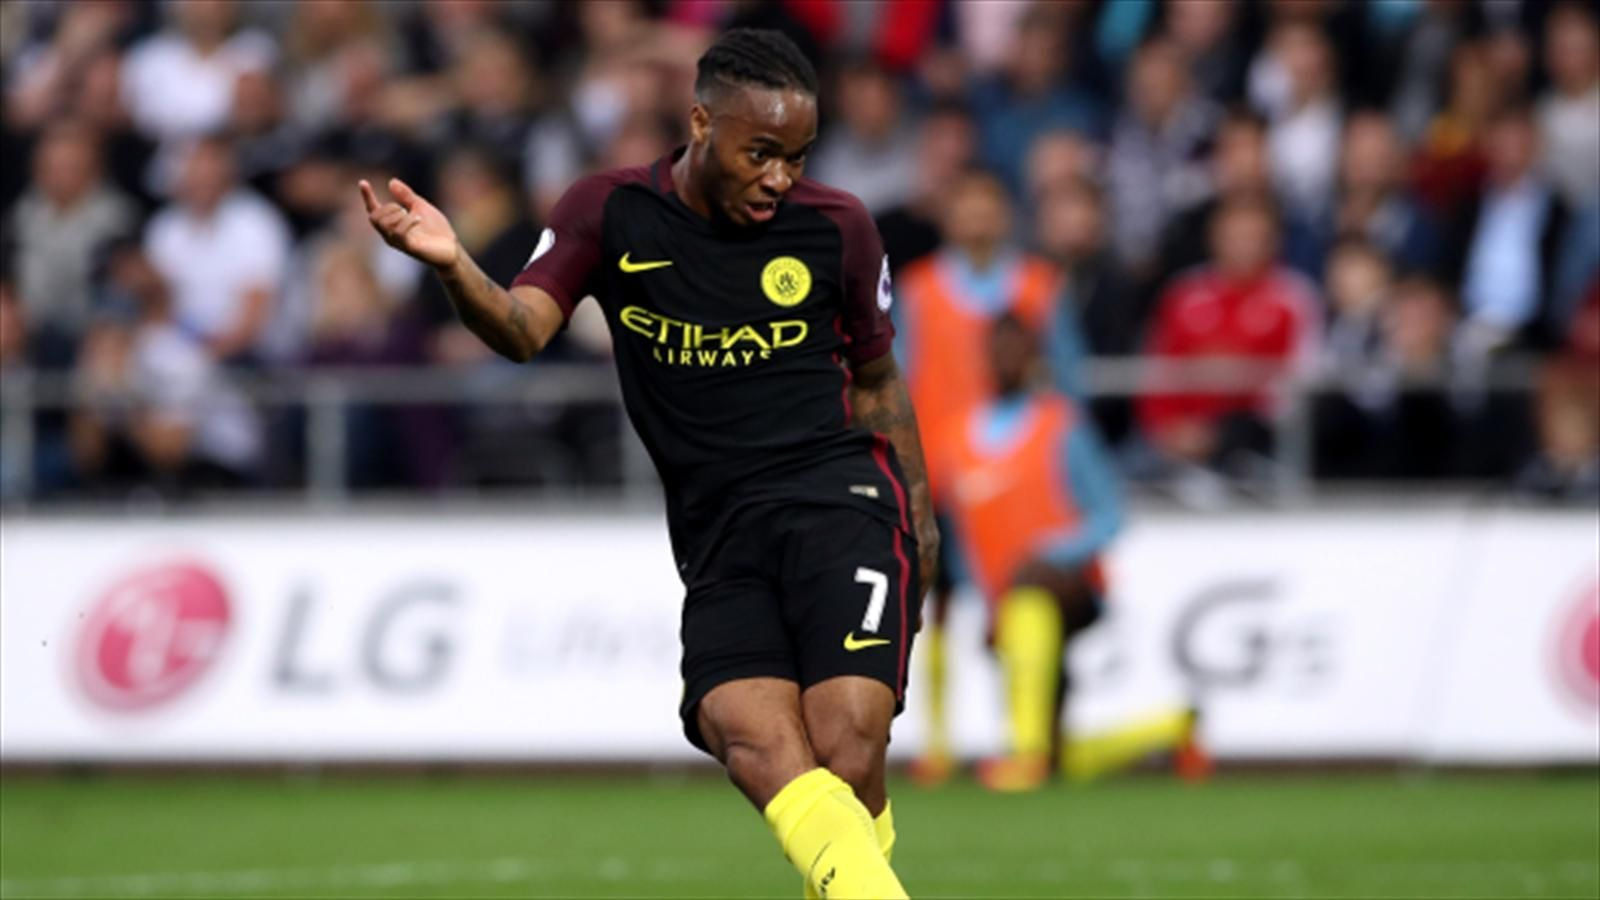 Raheem Sterling steeled for a tough month ahead for Manchester City - Eurosport.com ASIA